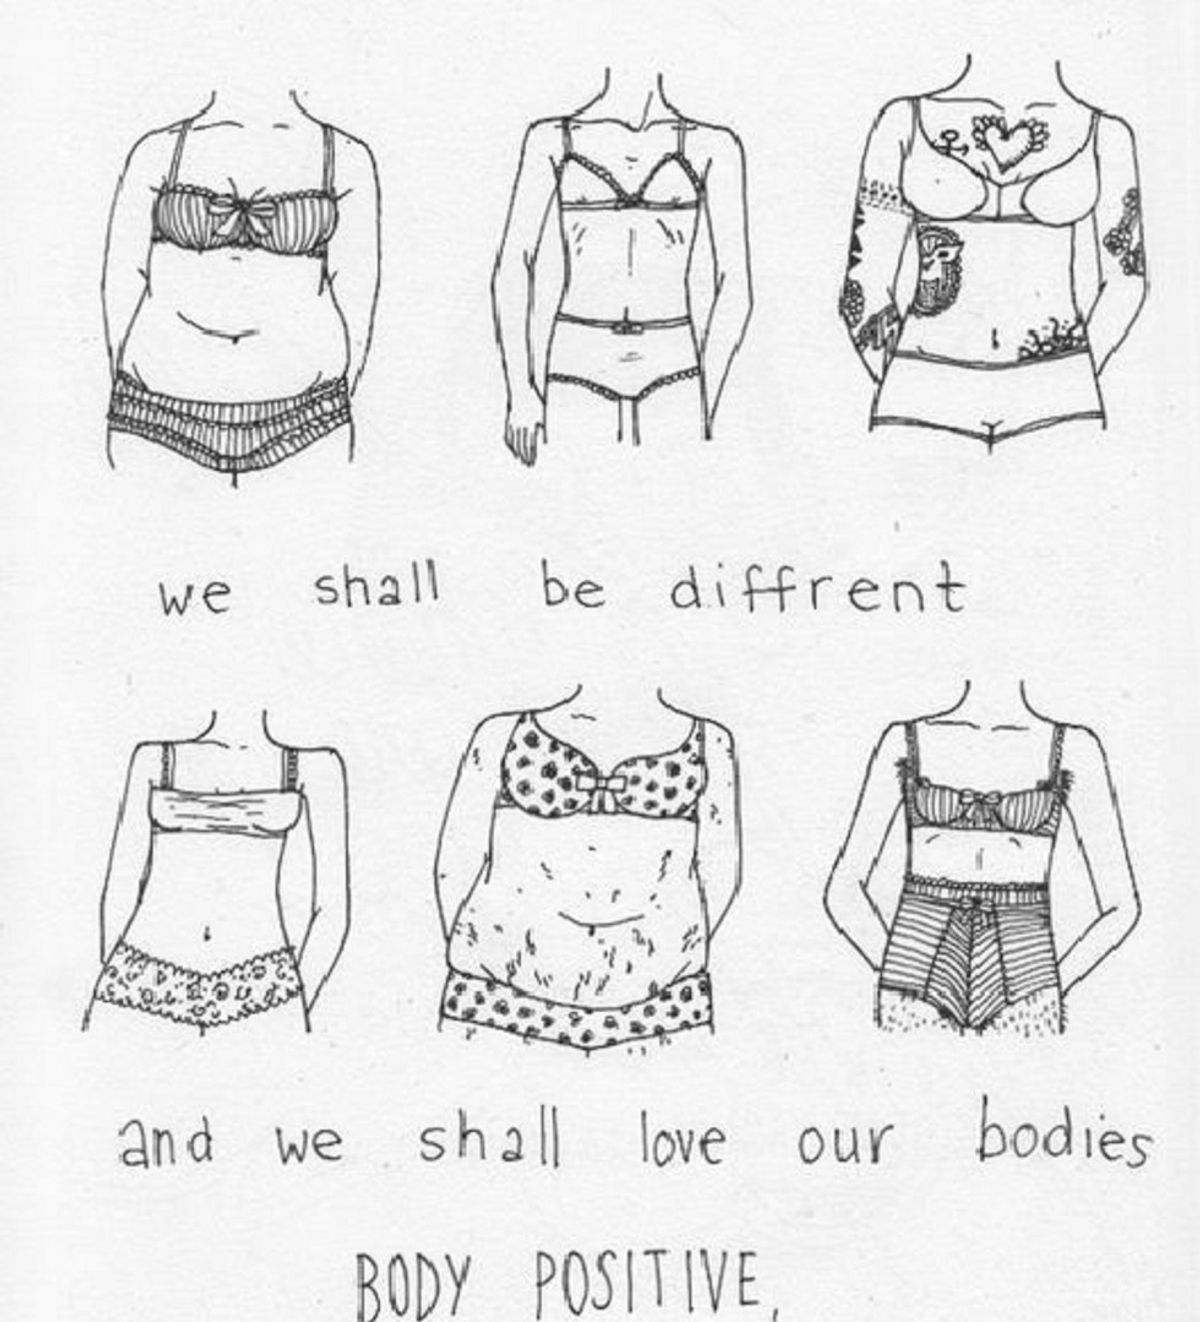 Why You Should Choose To Be Body Positive